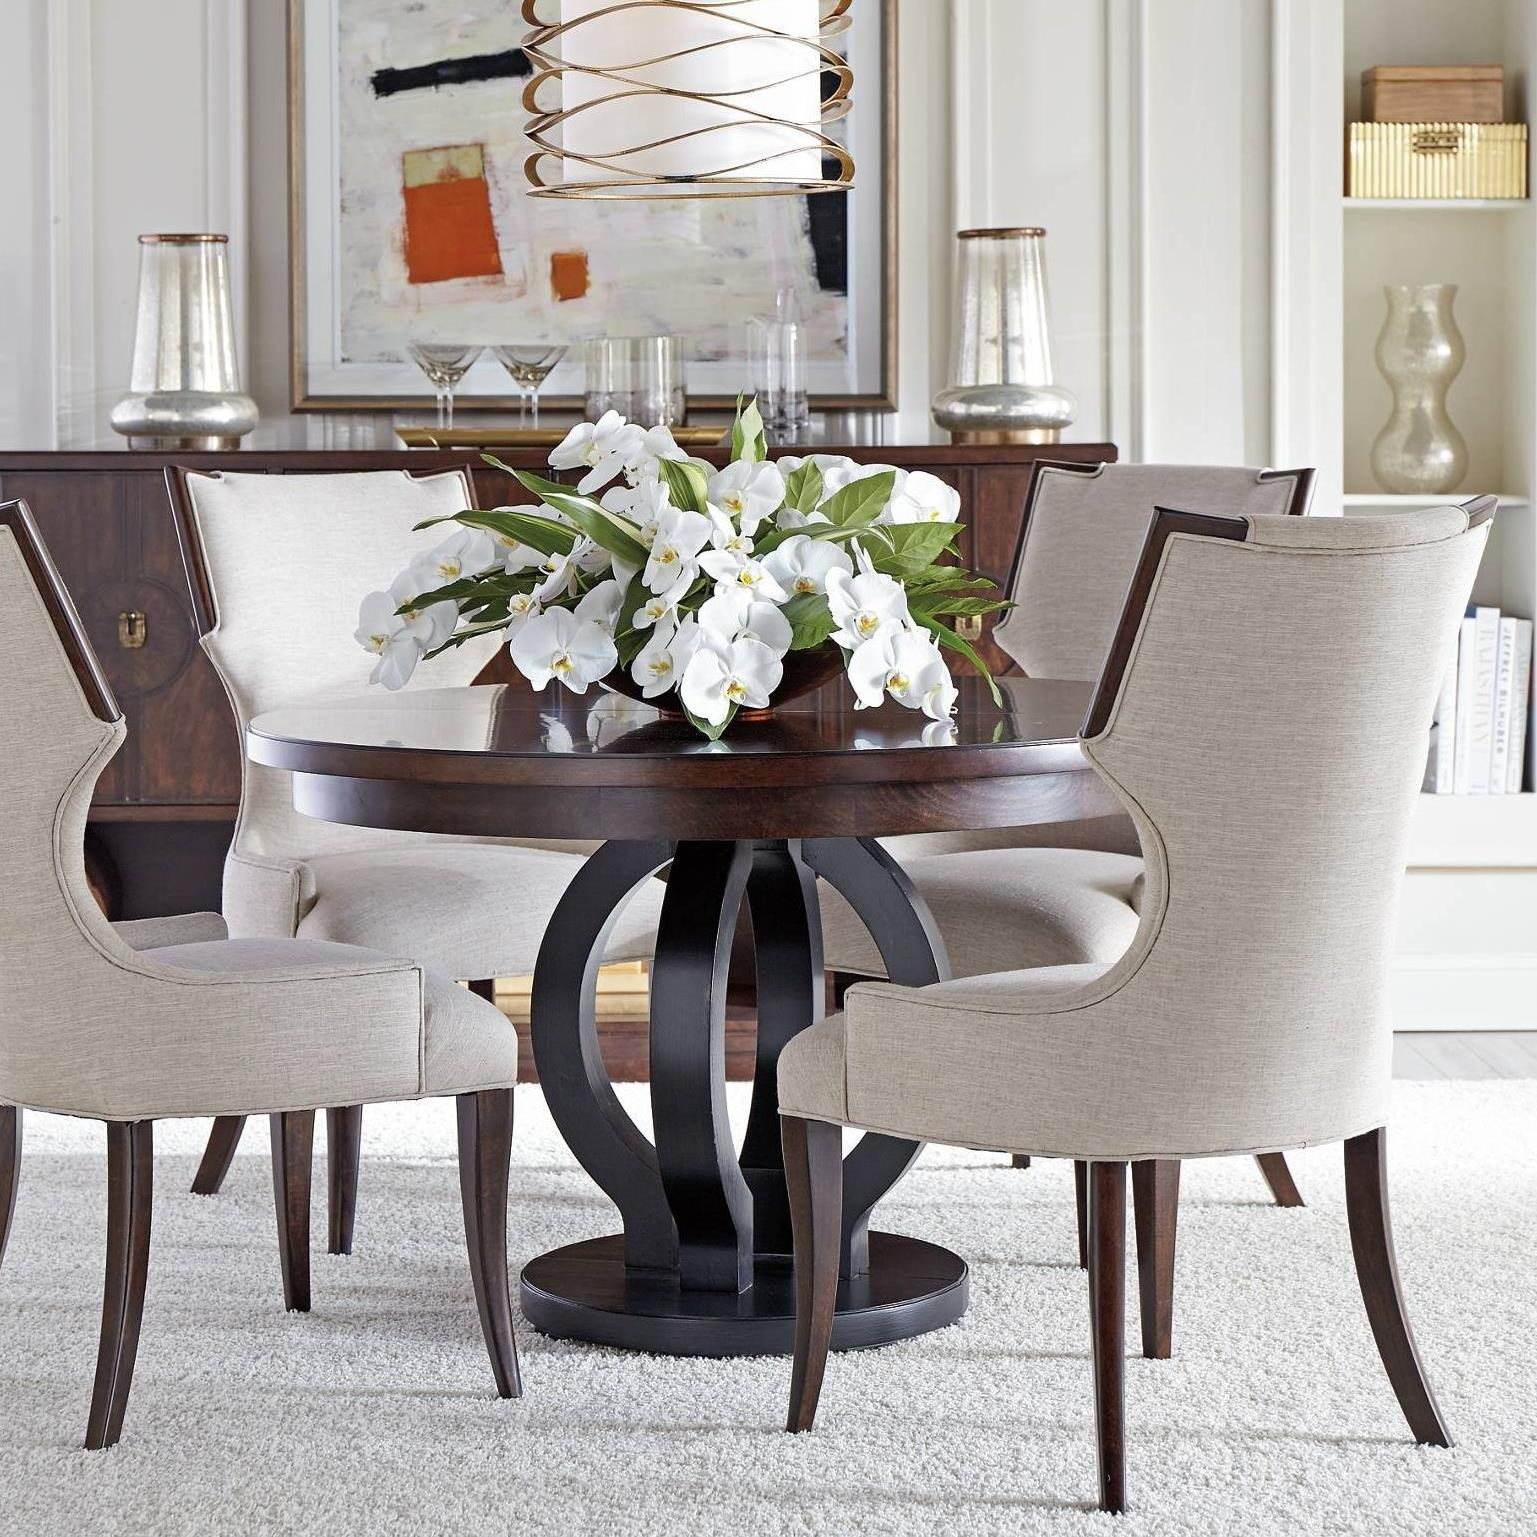 Diy round dining room table